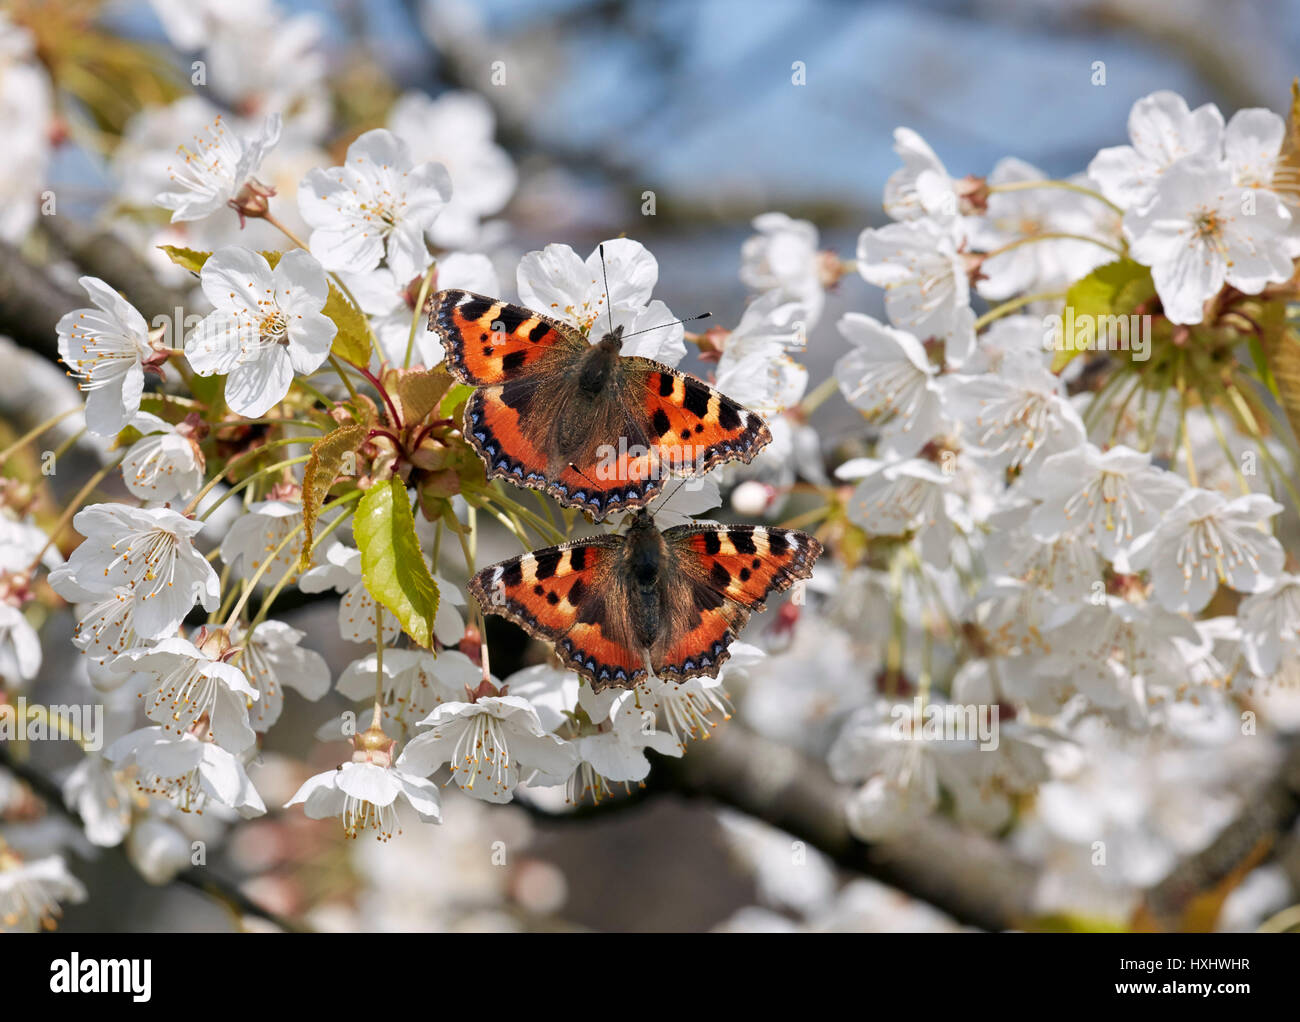 Pair of courting Small Tortoiseshell butterflies on Cherry flowers. Hurst Meadows, East Molesey, Surrey, UK. - Stock Image